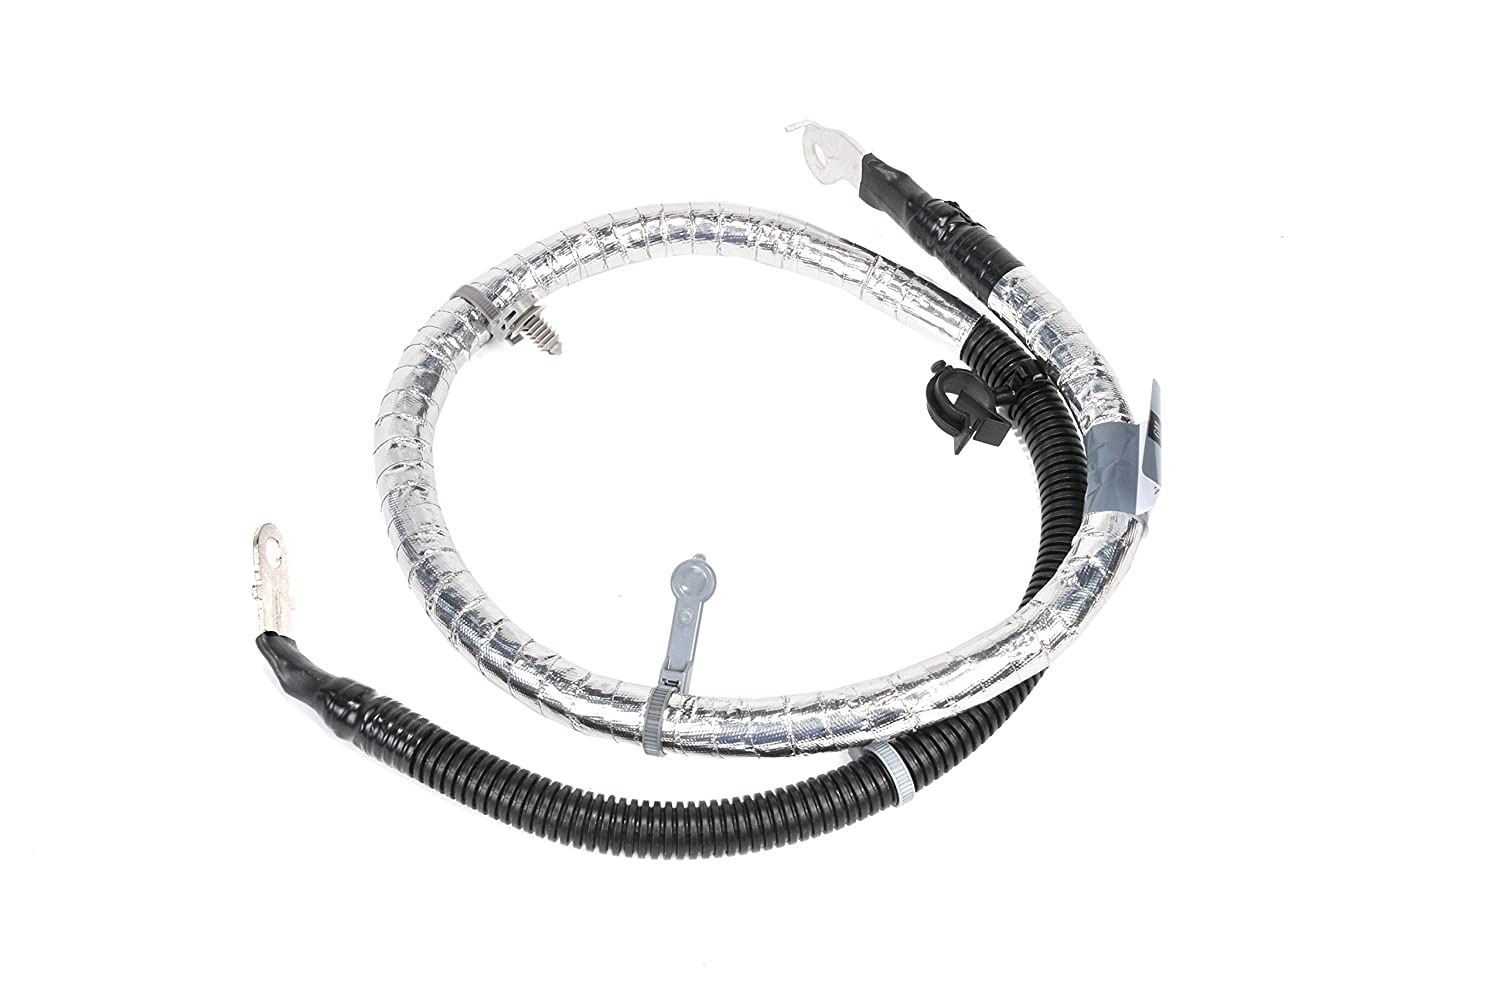 Genuine GM 25875320 Starter Solenoid Cable